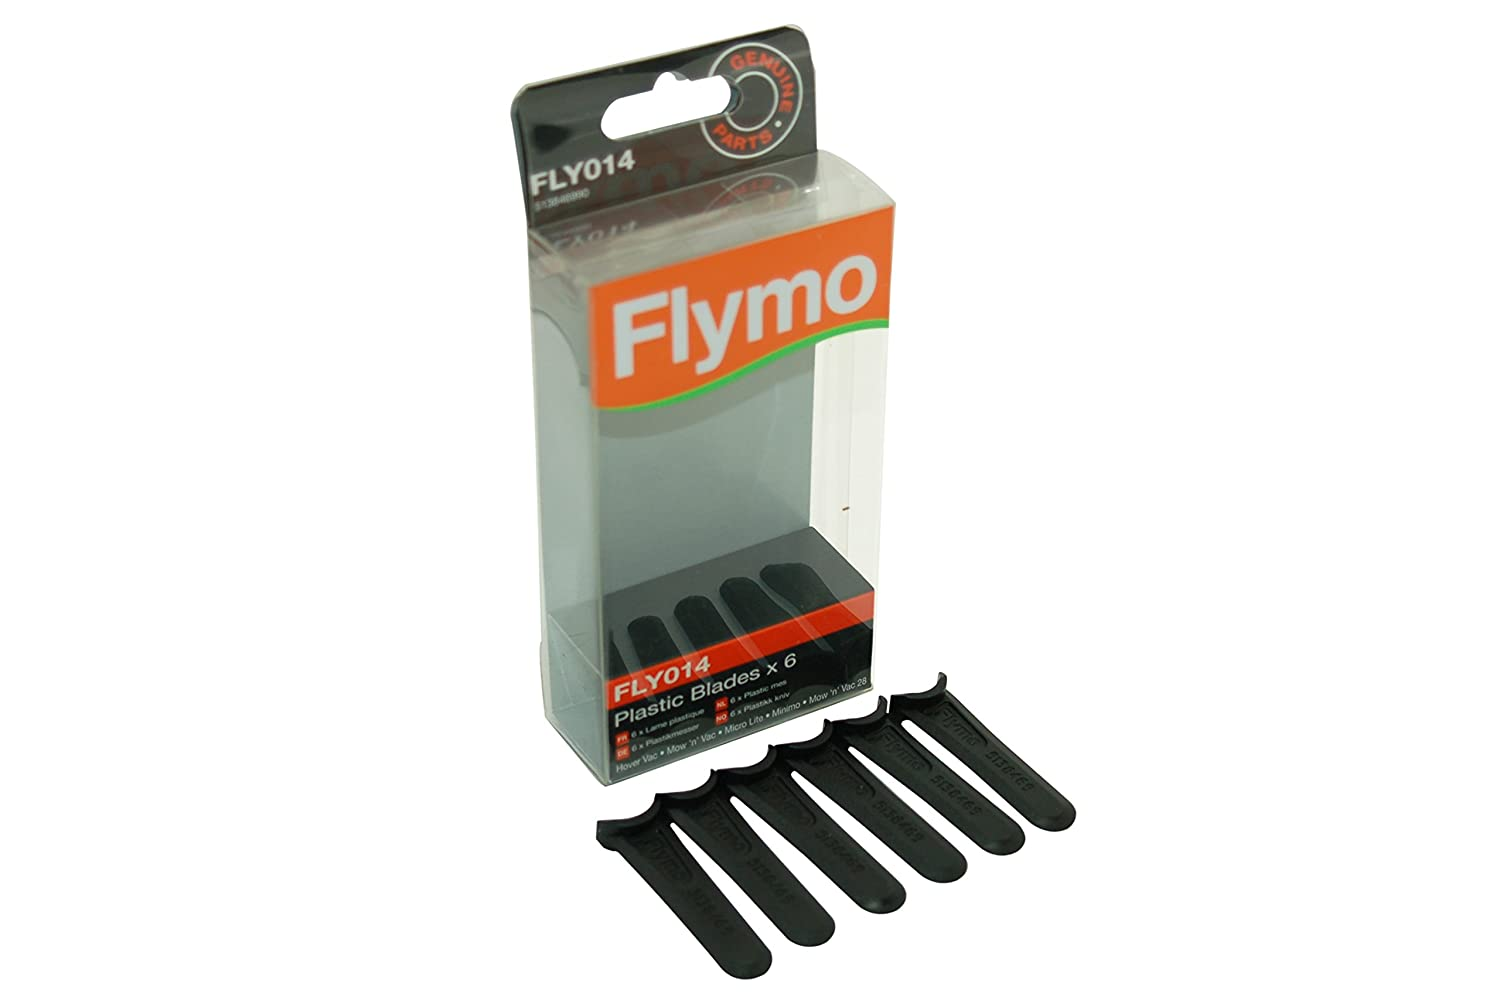 Flymo GENUINE Lawnmower Plastic Blades Fly014 - 6 5138469902 HUS5138469902